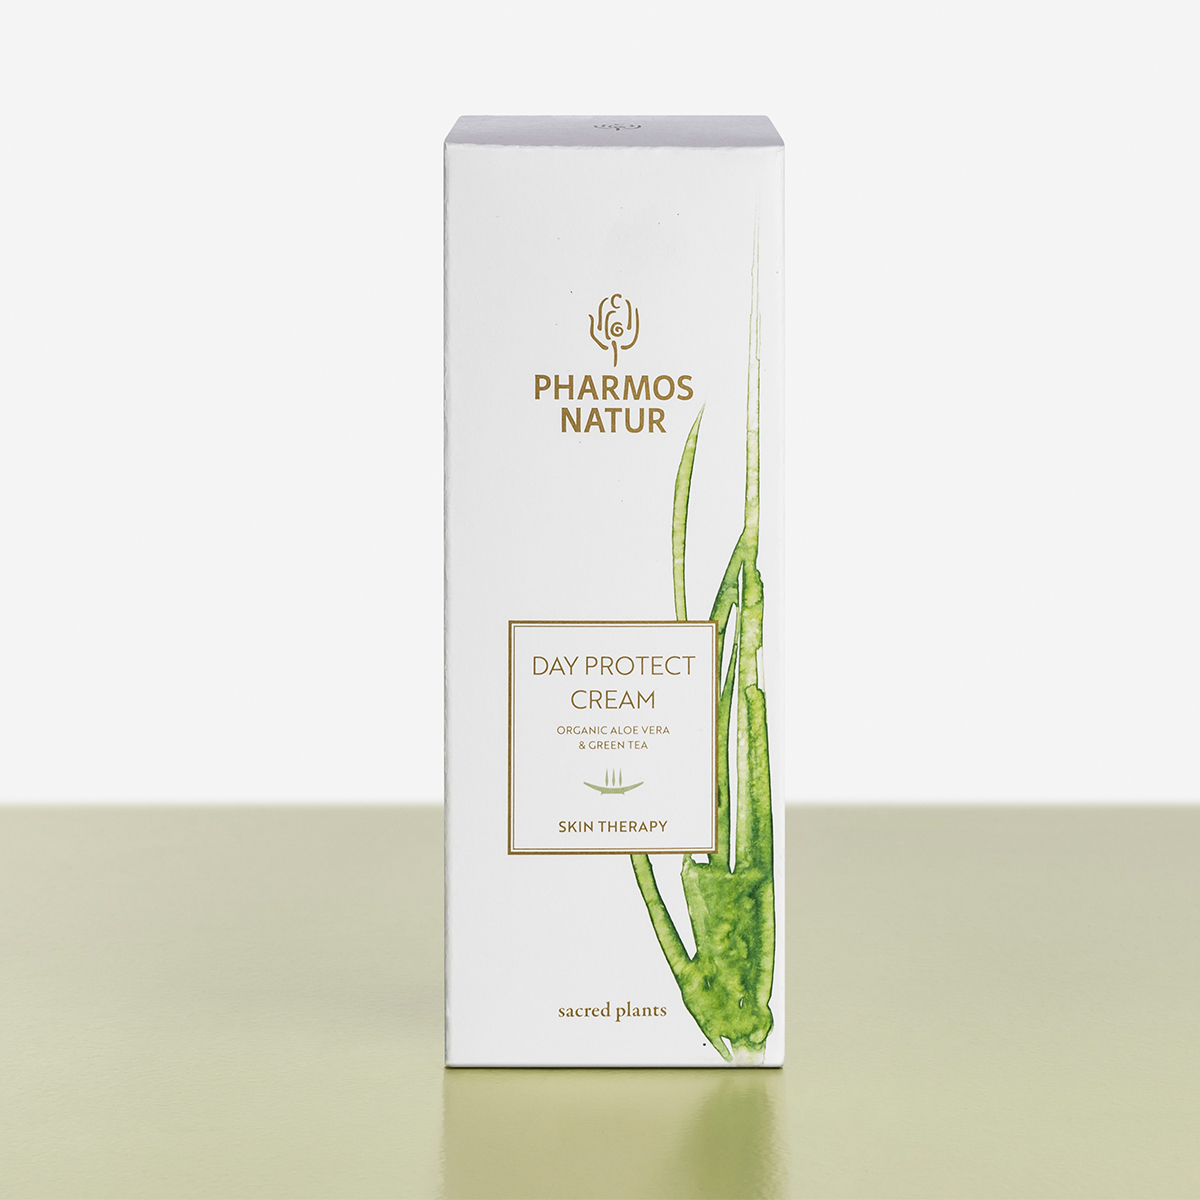 Verpackung Day protect Cream Pr